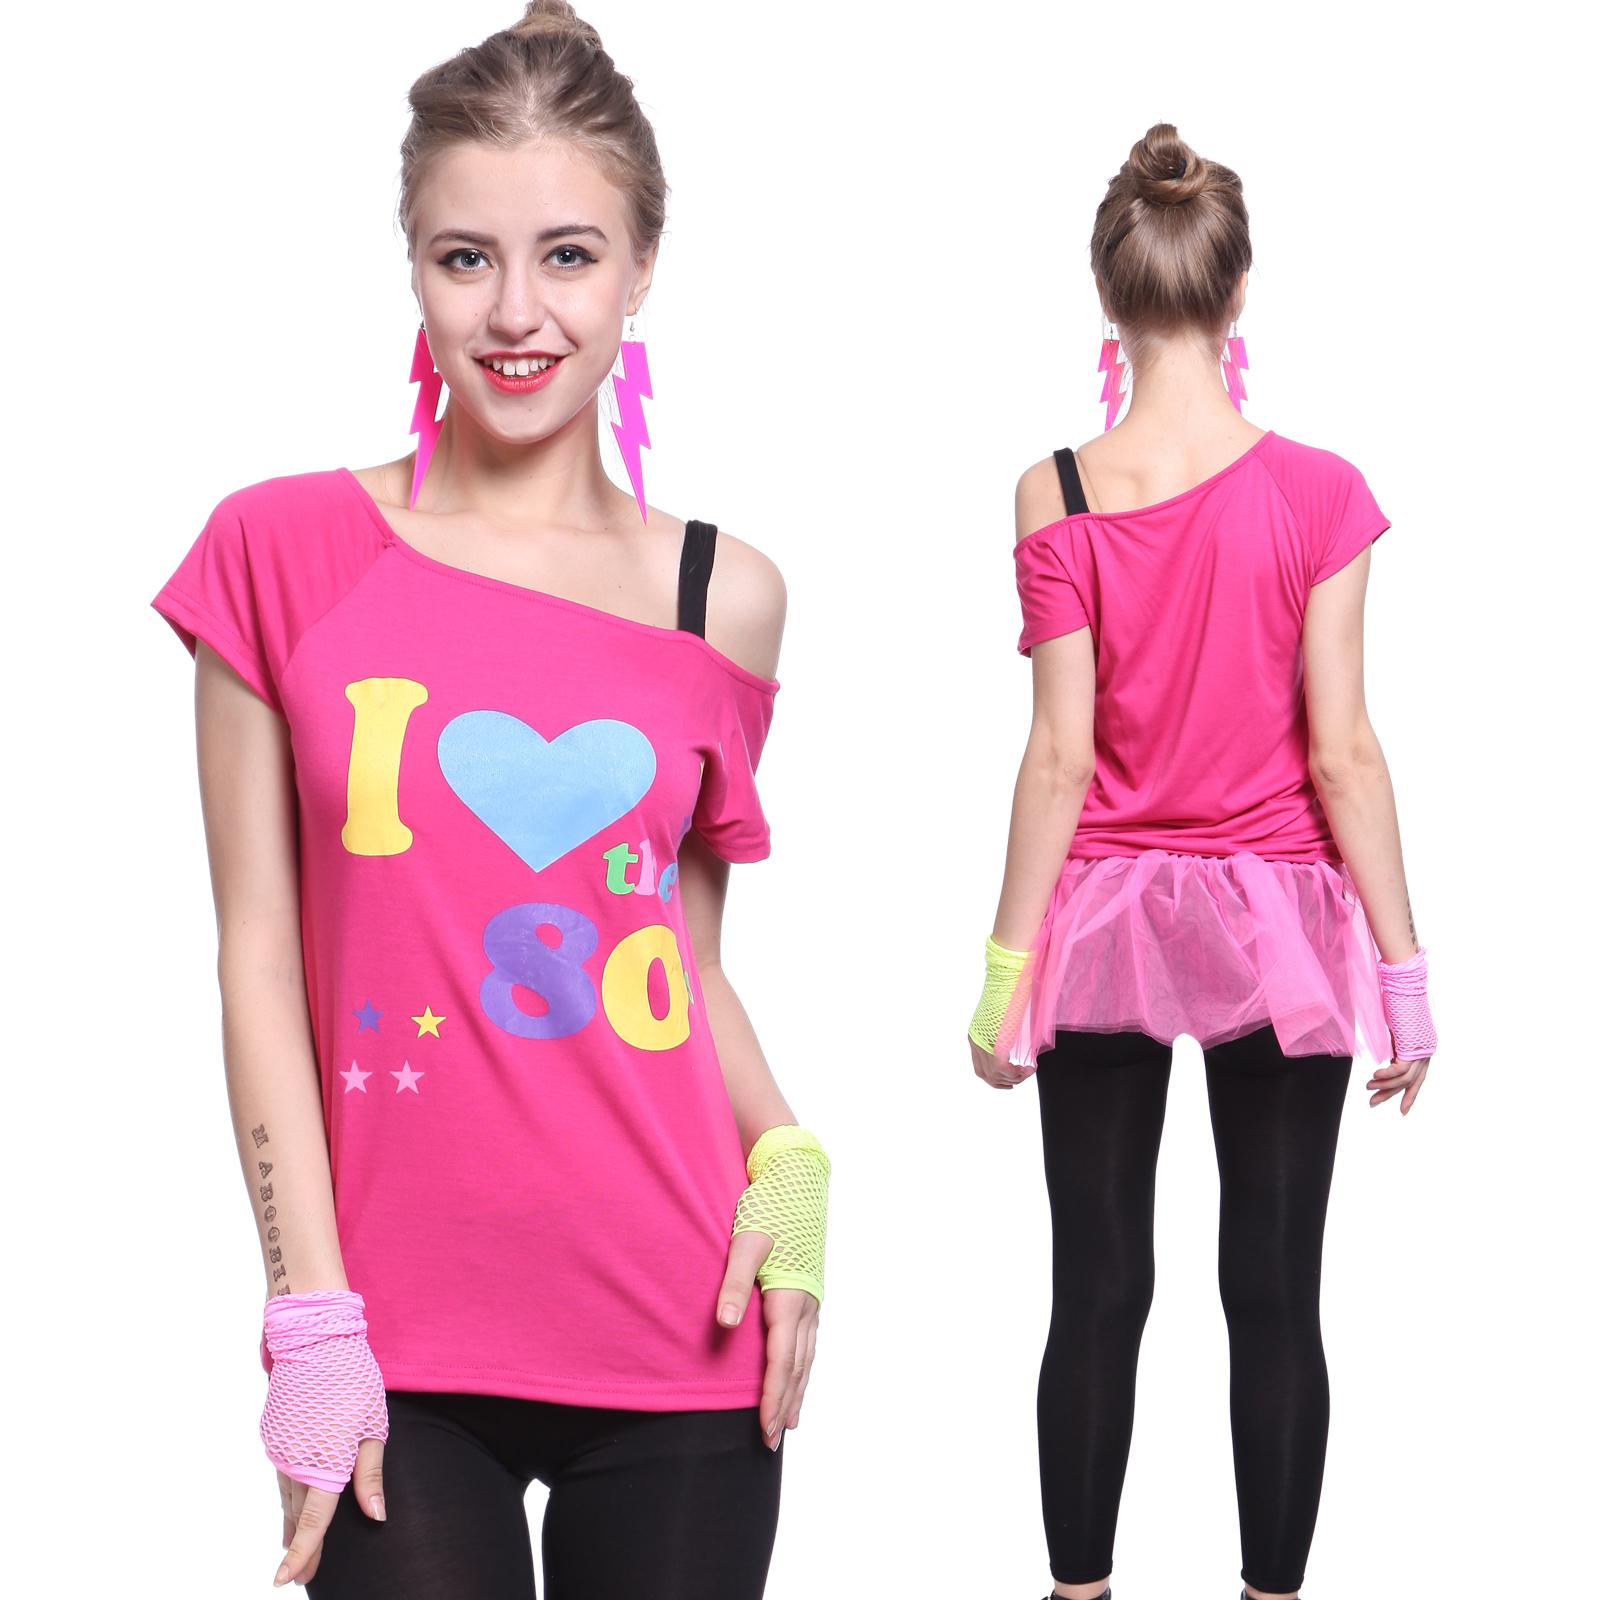 80s Fashion For Women T Shirts Ladies I Love The s Top